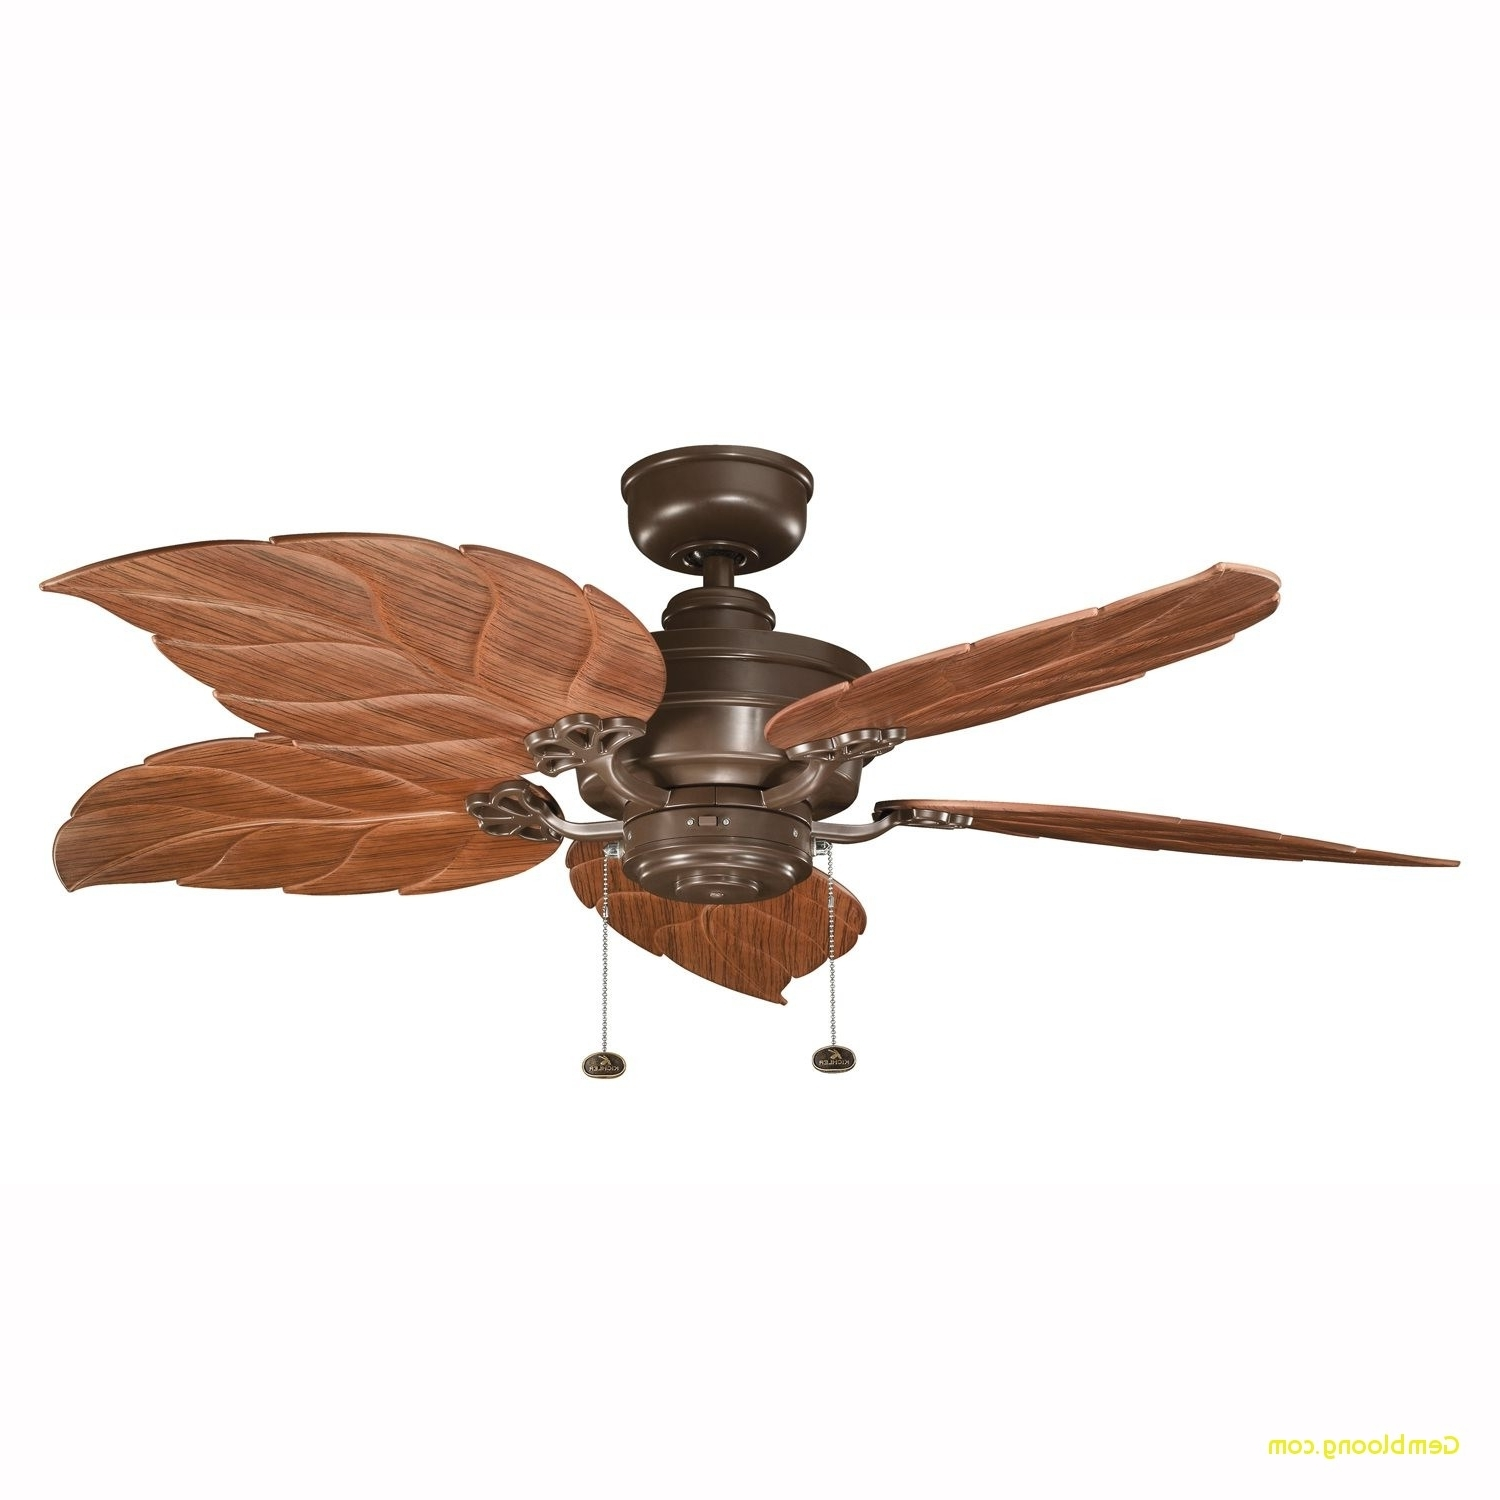 11 Luxury Bluetooth Ceiling Fan (View 20 of 20)